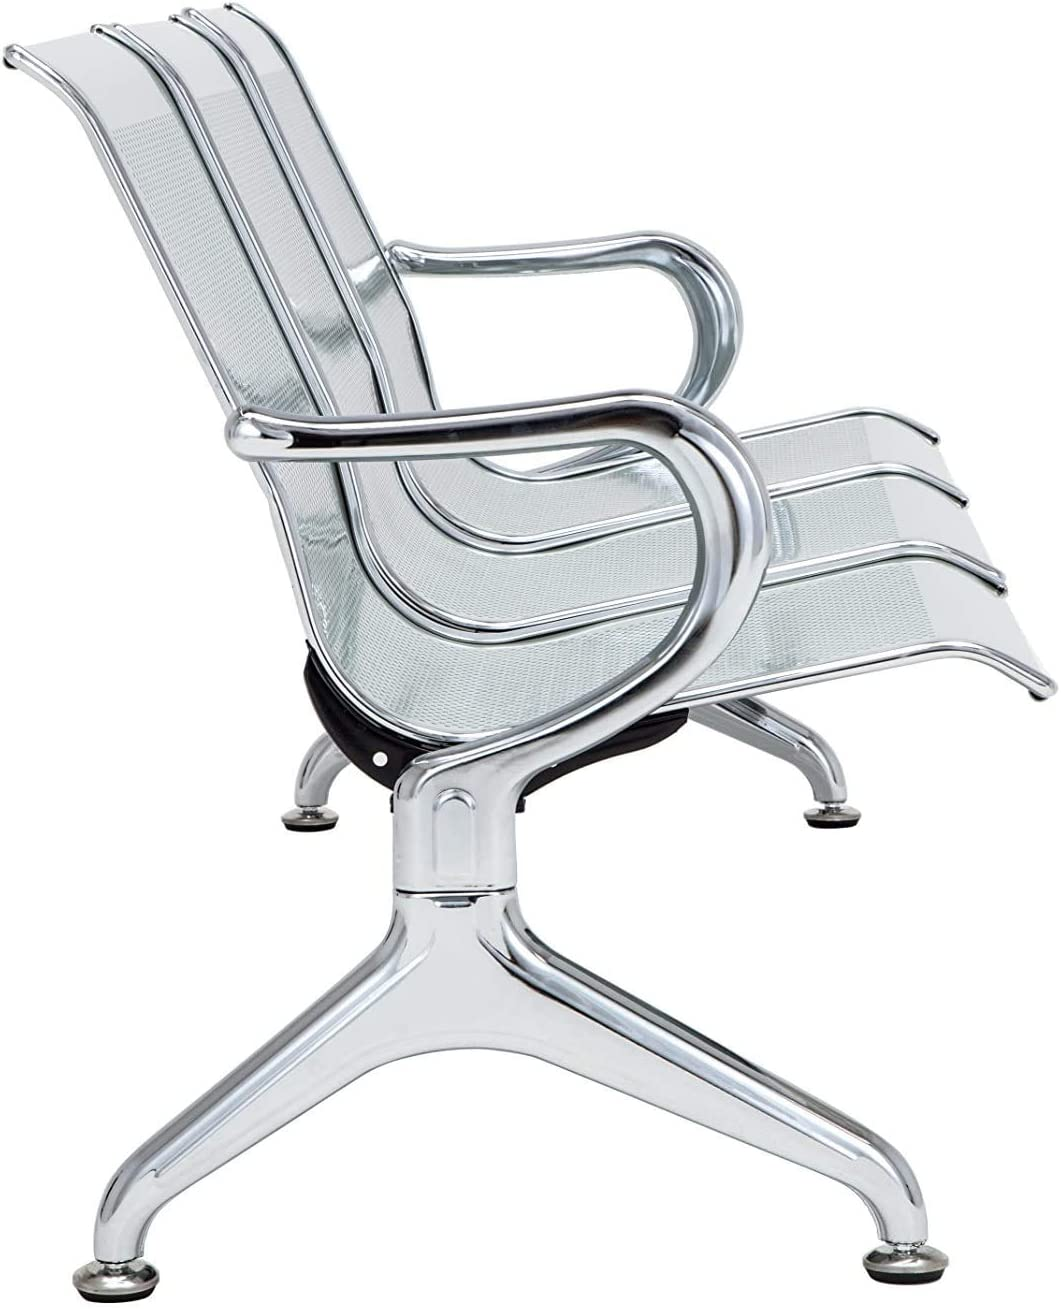 Silverylake Office Chair Guest Reception Chairs for Airport Waiting Room Chairs Salon Barber Bank Hall Room Conference Airport with Black Leather Cushion 3 Seat Bench Furniture